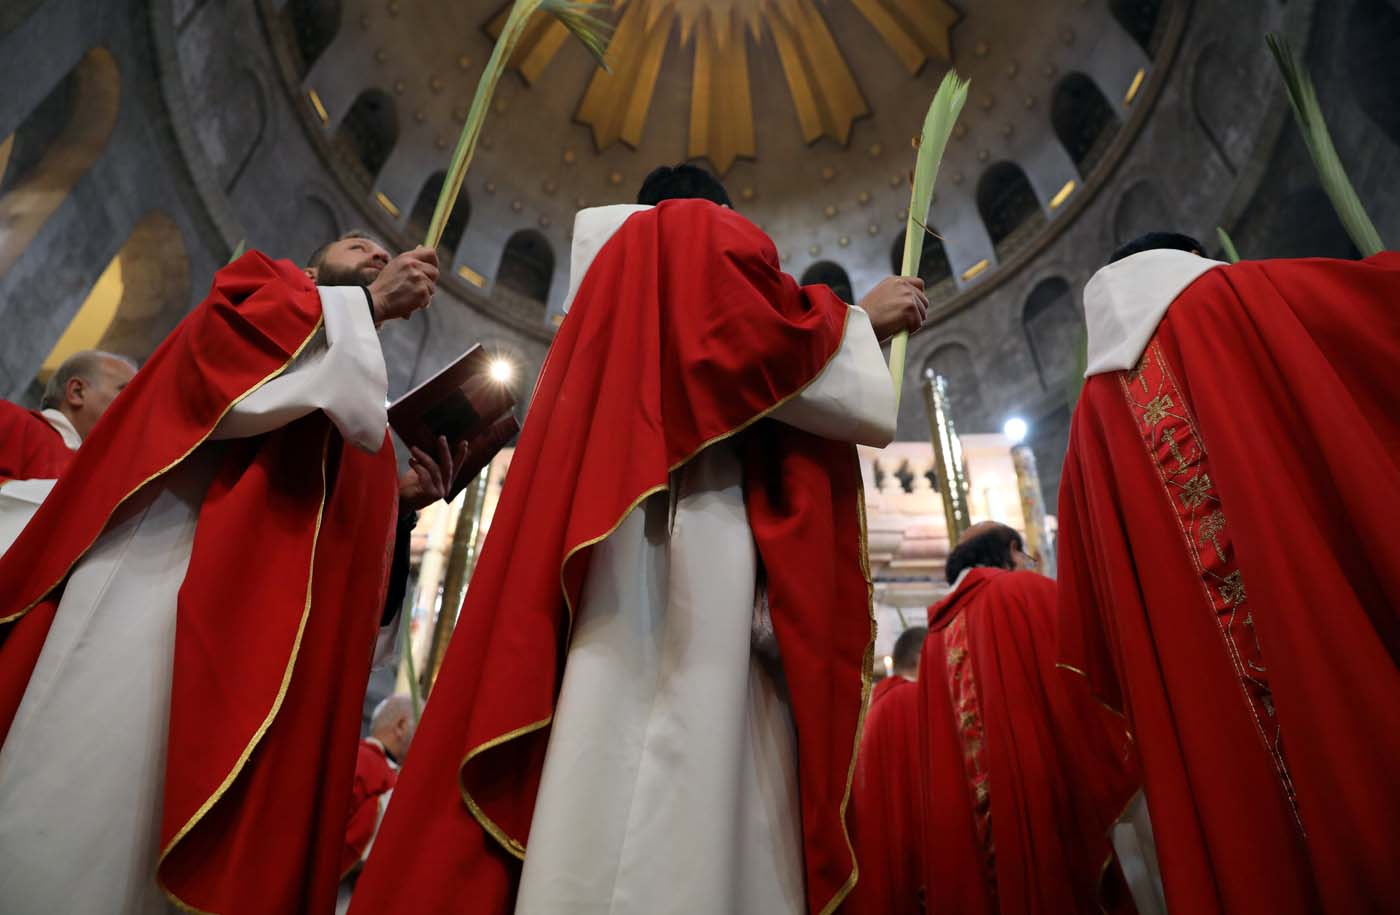 Members of the Catholic Christian clergy take part in a Palm Sunday ceremony in the Church of the Holy Sepulchre in Jerusalem's Old City April 9, 2017. REUTERS/Ammar Awad